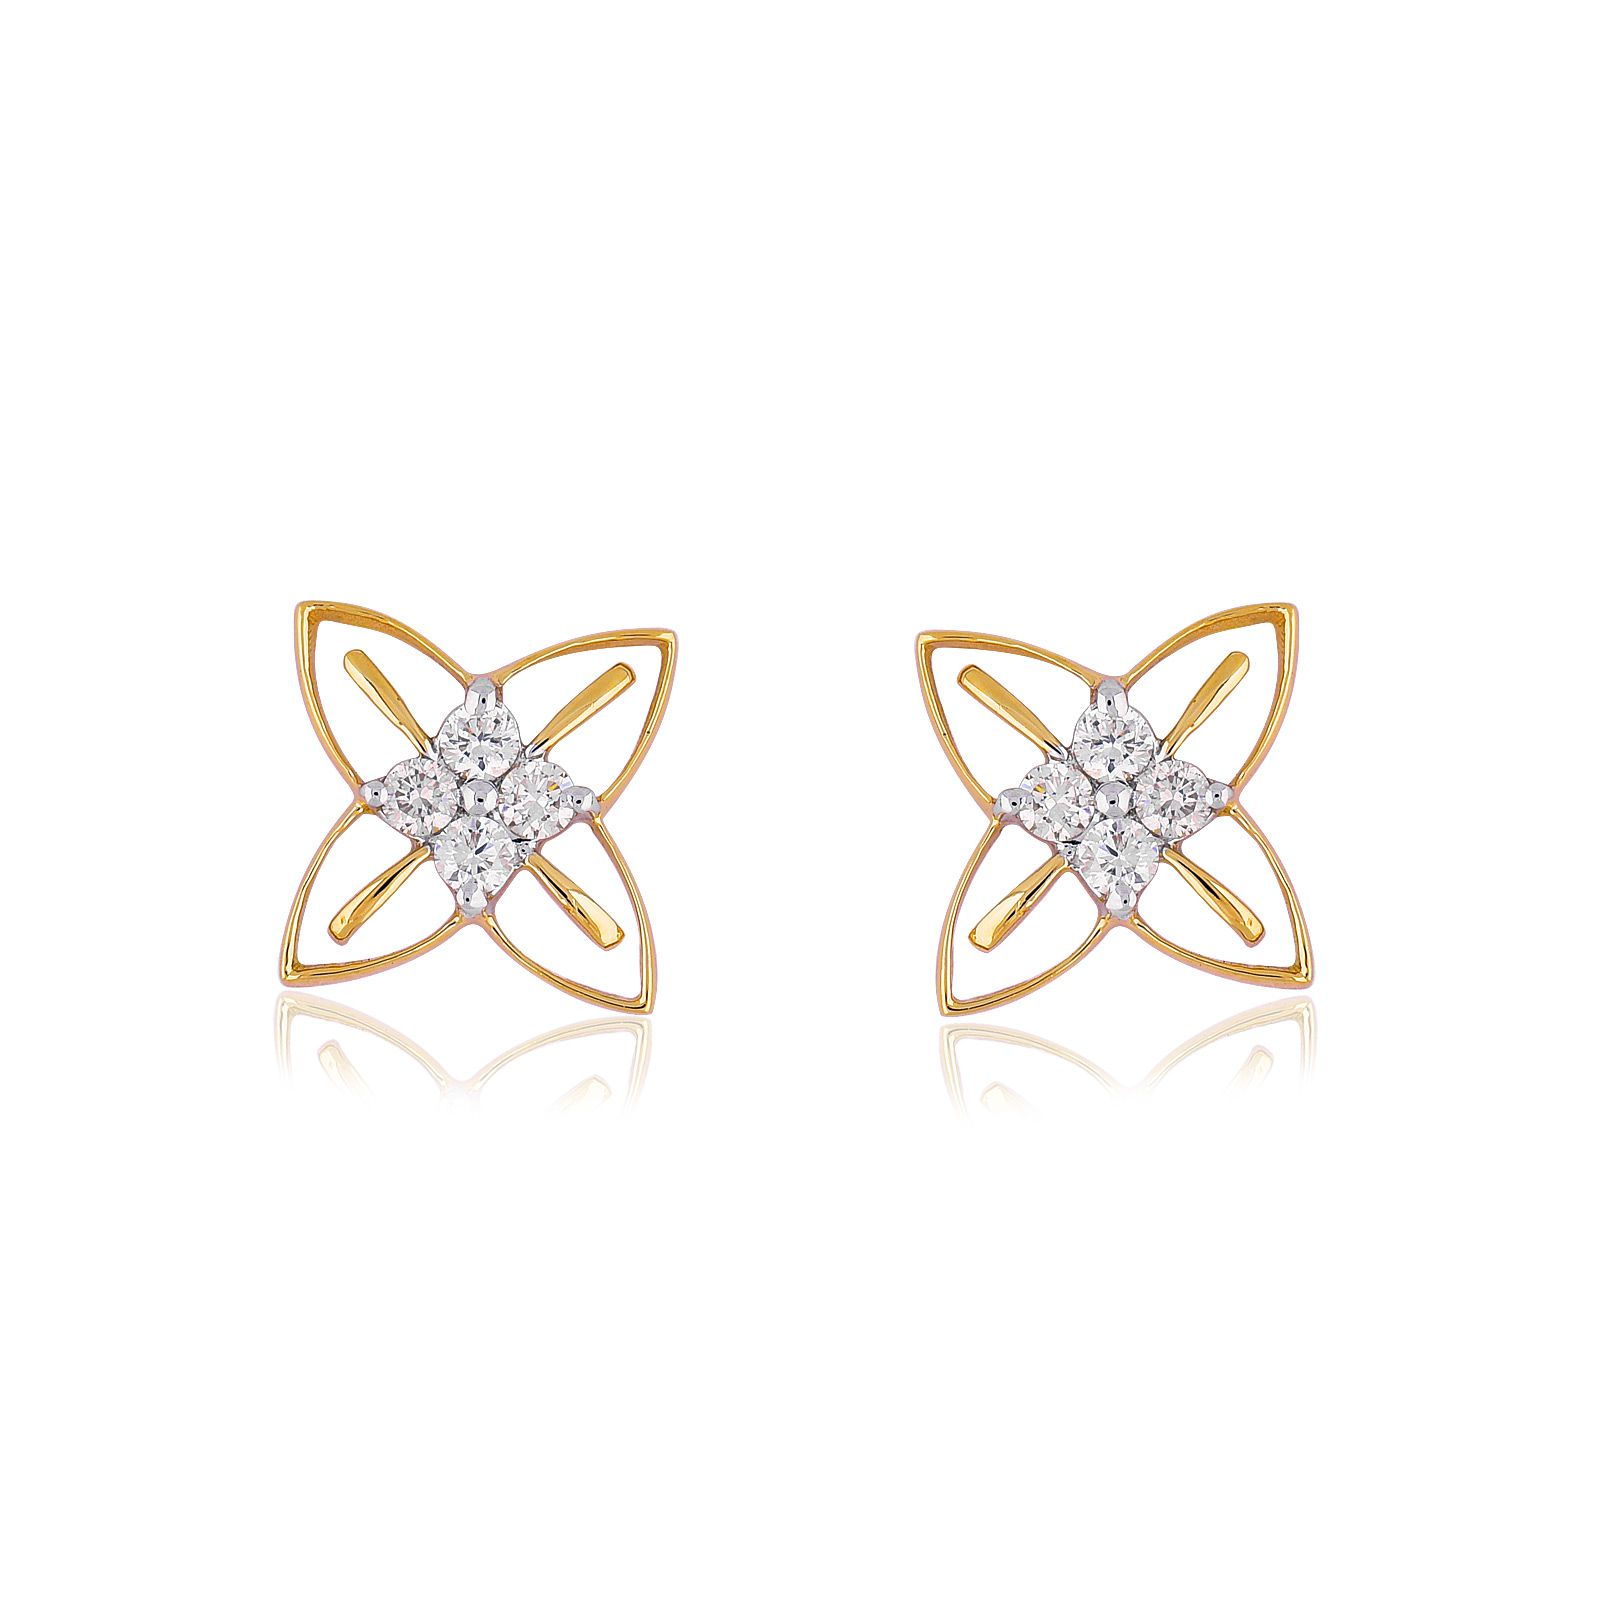 Jewels Choice 18kt Yellow Gold Stud Earrings